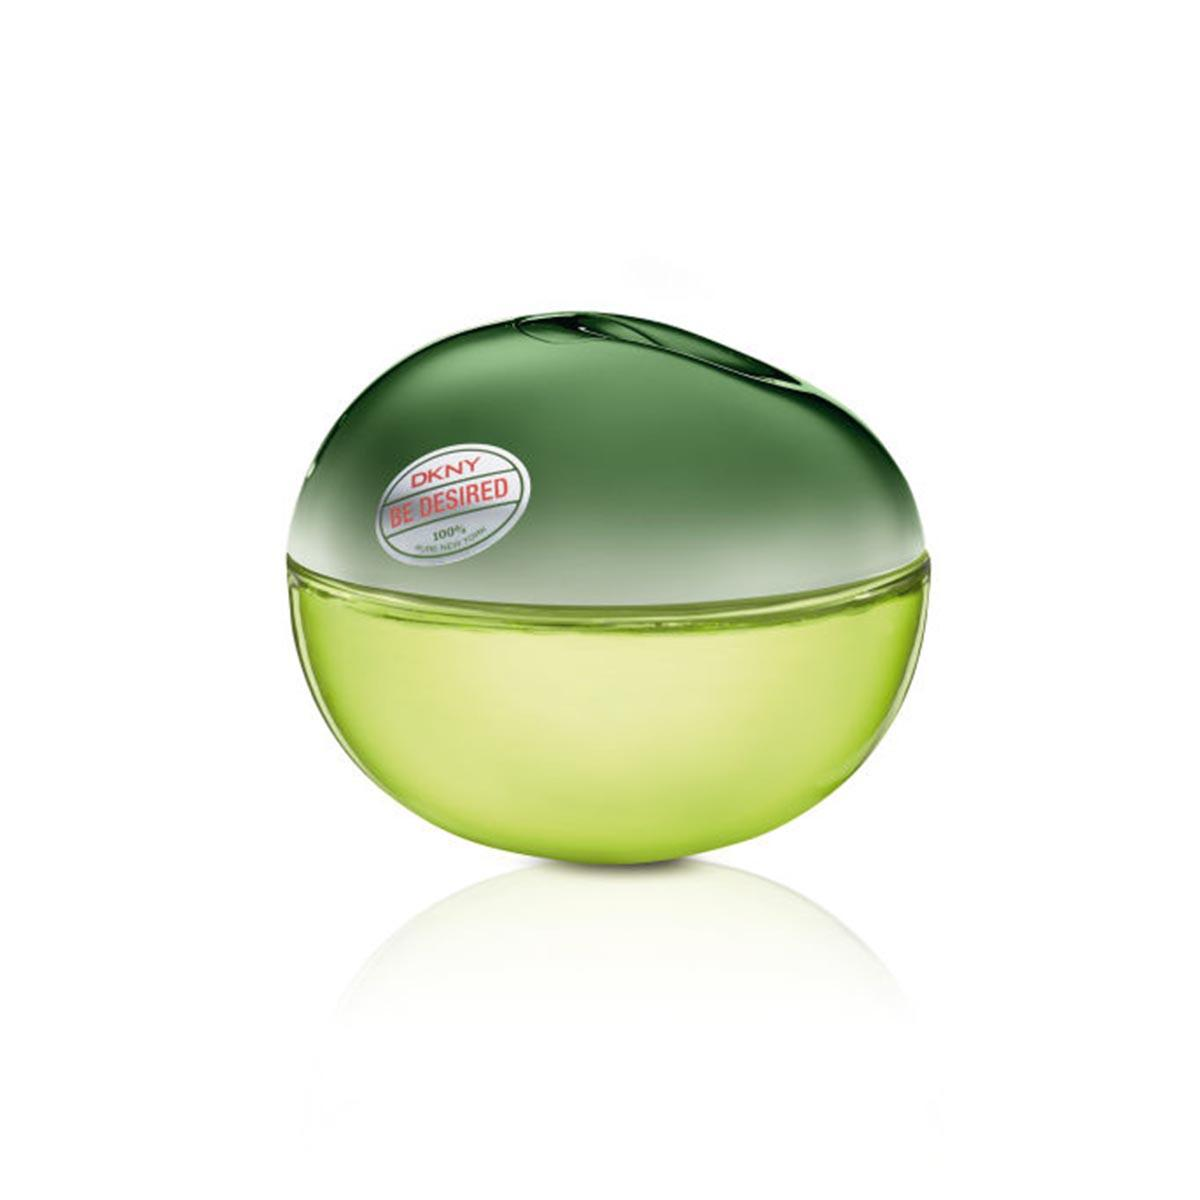 Donna karan Dkny Be Desired Eau De Parfum 50 ml